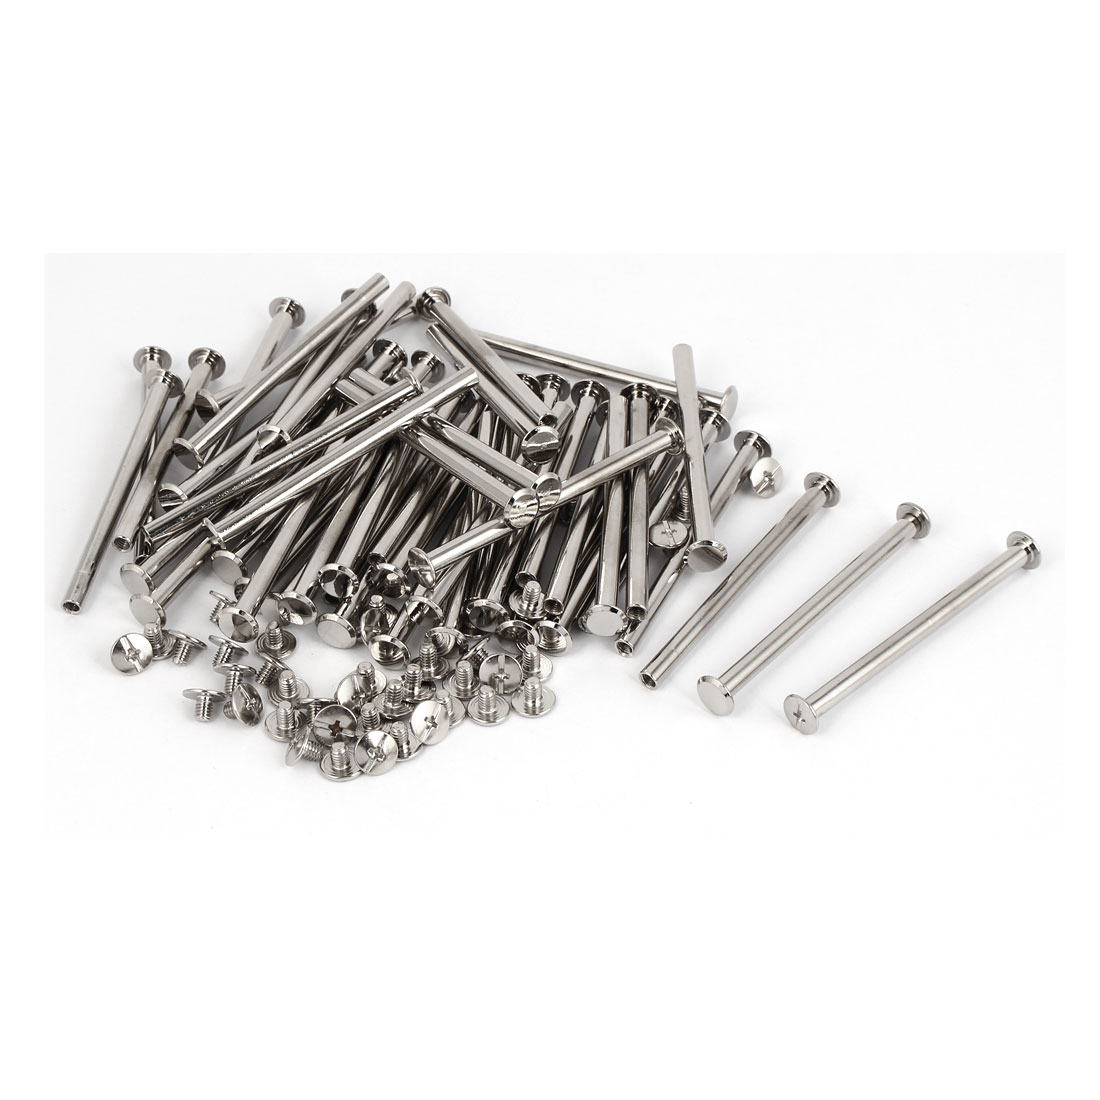 Scrapbook Purse Belt Metal Binding Chicago Screws Bolts M5 x 70mm 50 Pcs